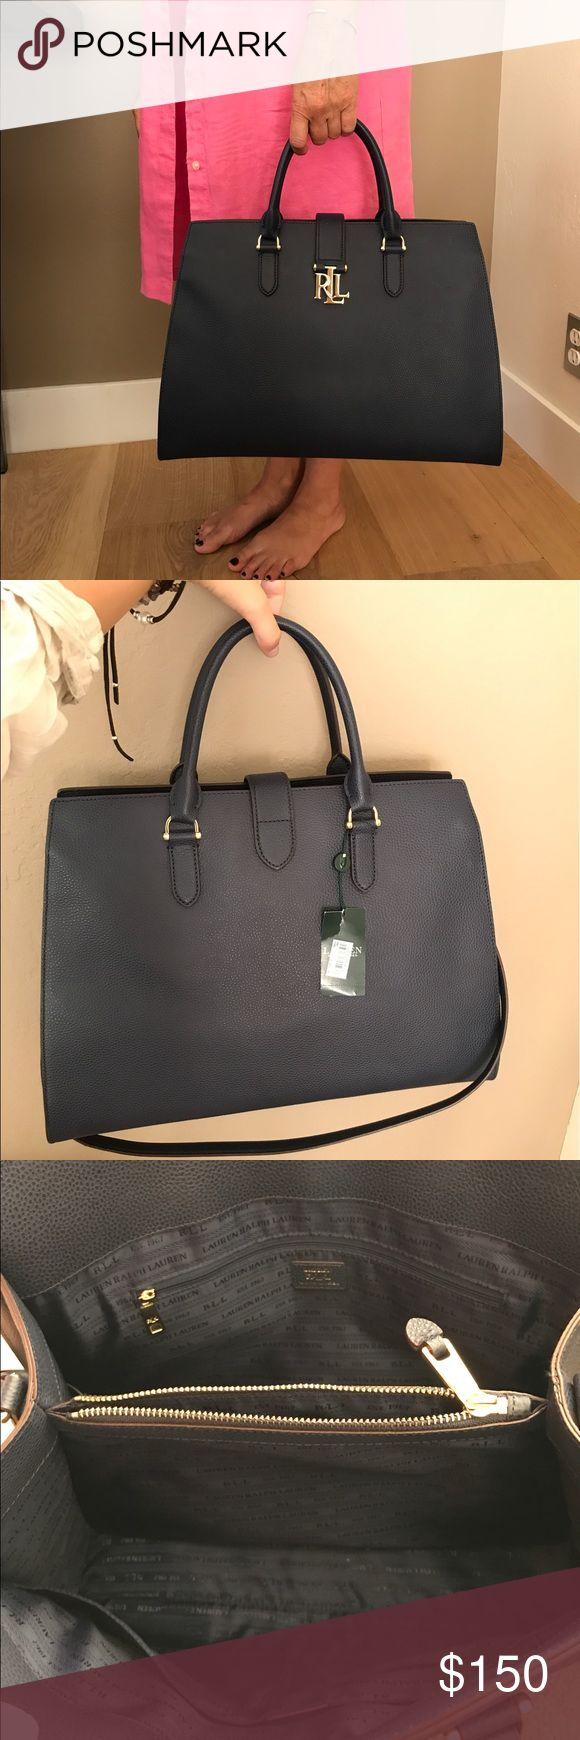 Ralph Lauren NEW Navy Purse Ralph Lauren purse, perfect for a day out, large enough to hold most things you'd want in a purse. Classy, has tags. Ralph Lauren Bags Shoulder Bags